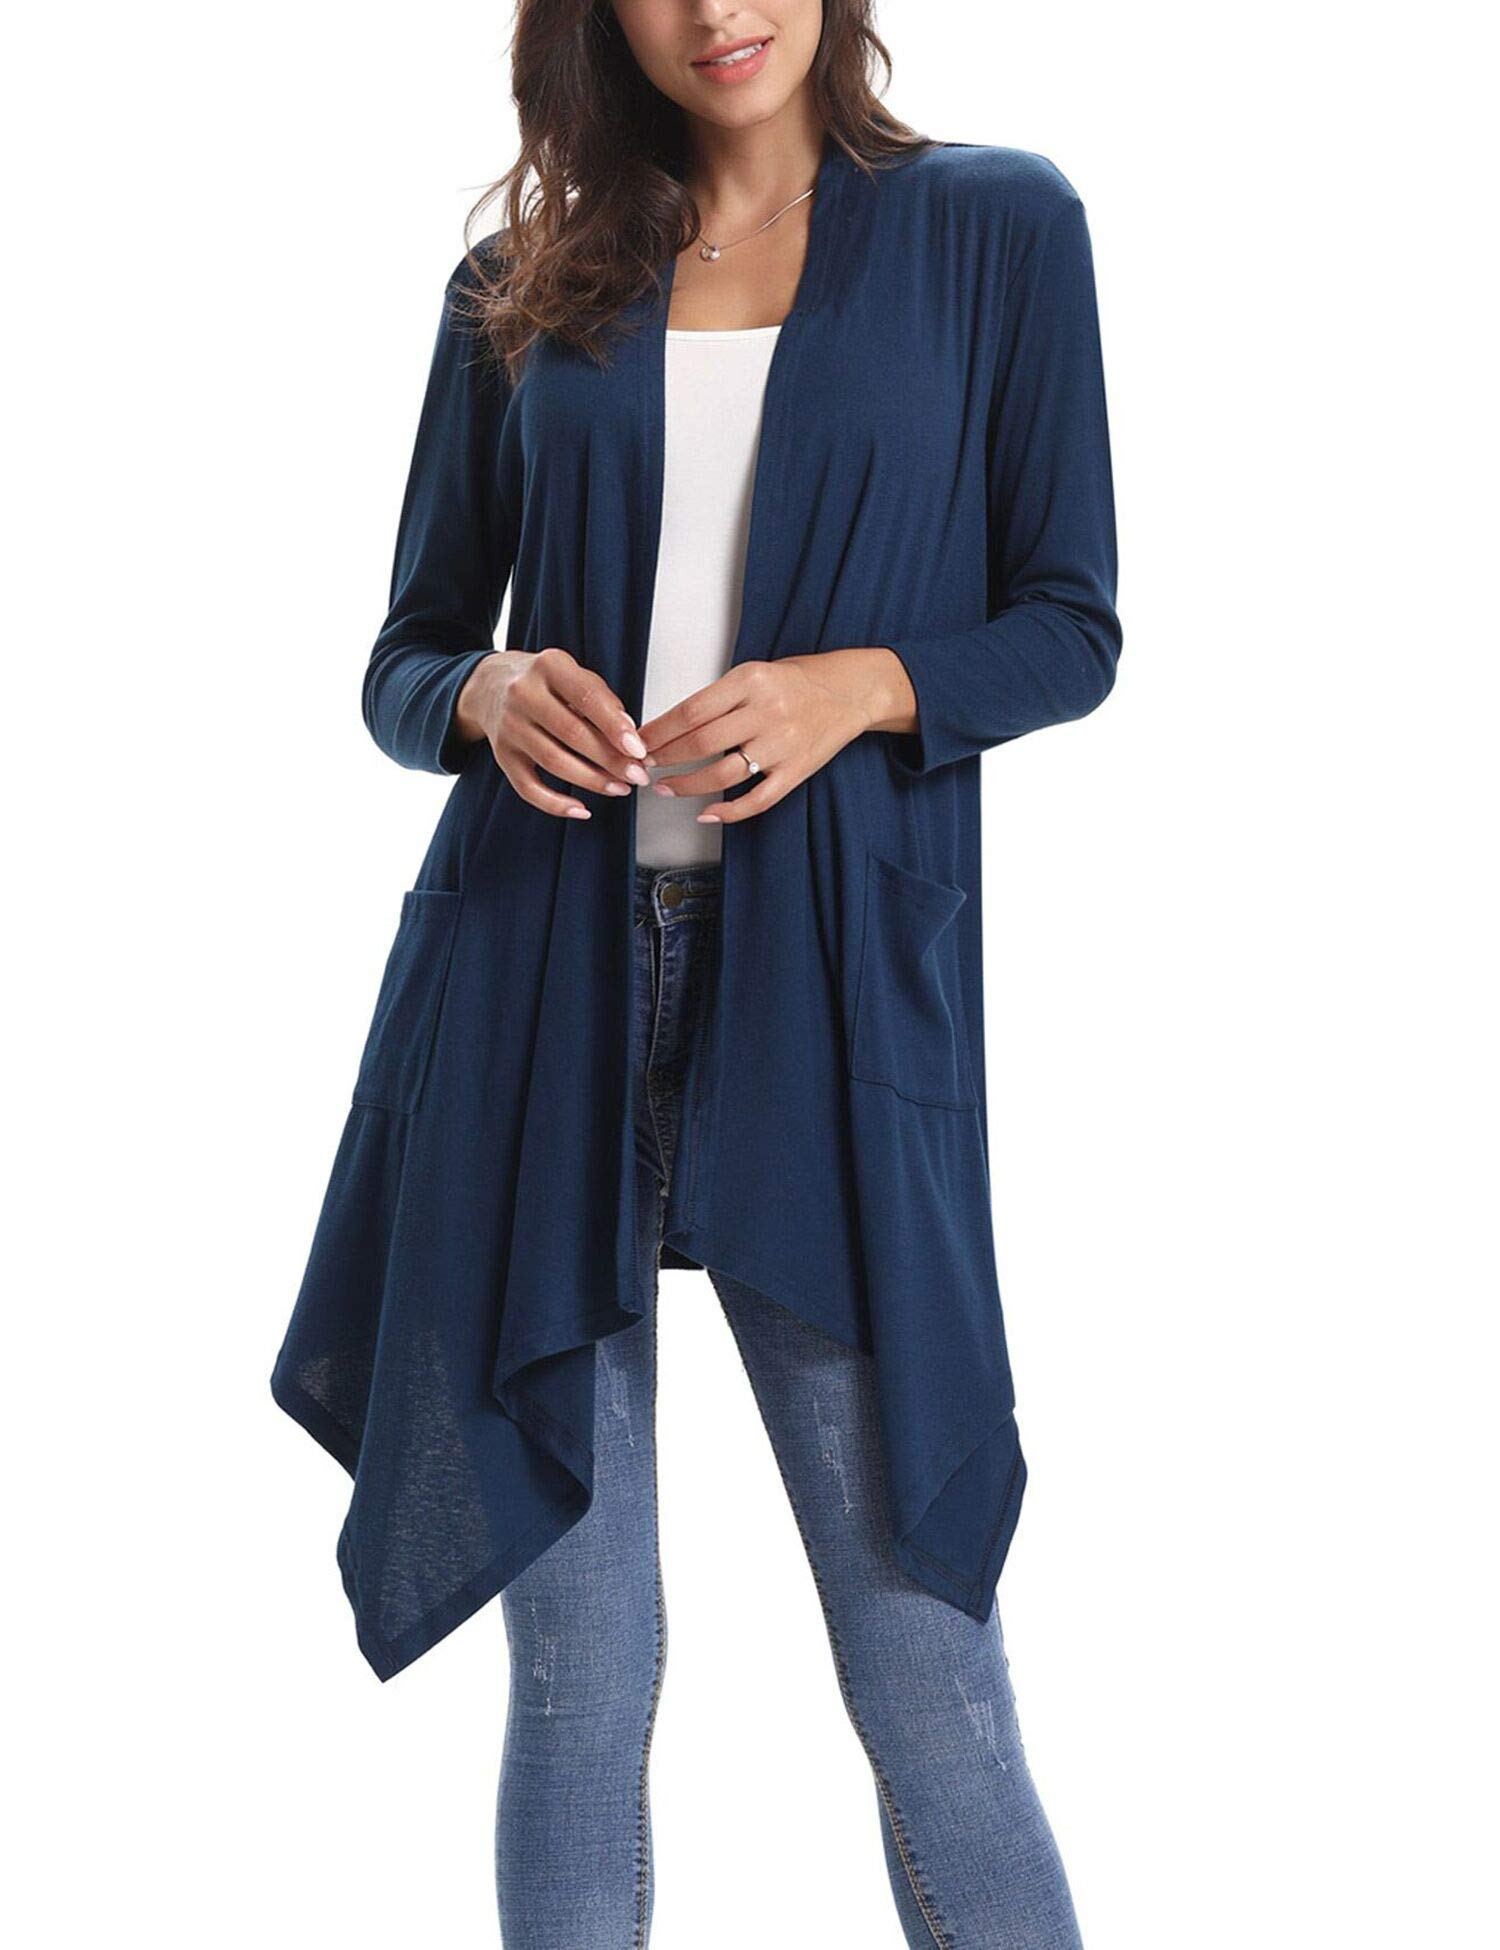 Abollria Long Sleeve Women Asymmetric Draped Open Front Cardigan Sweater